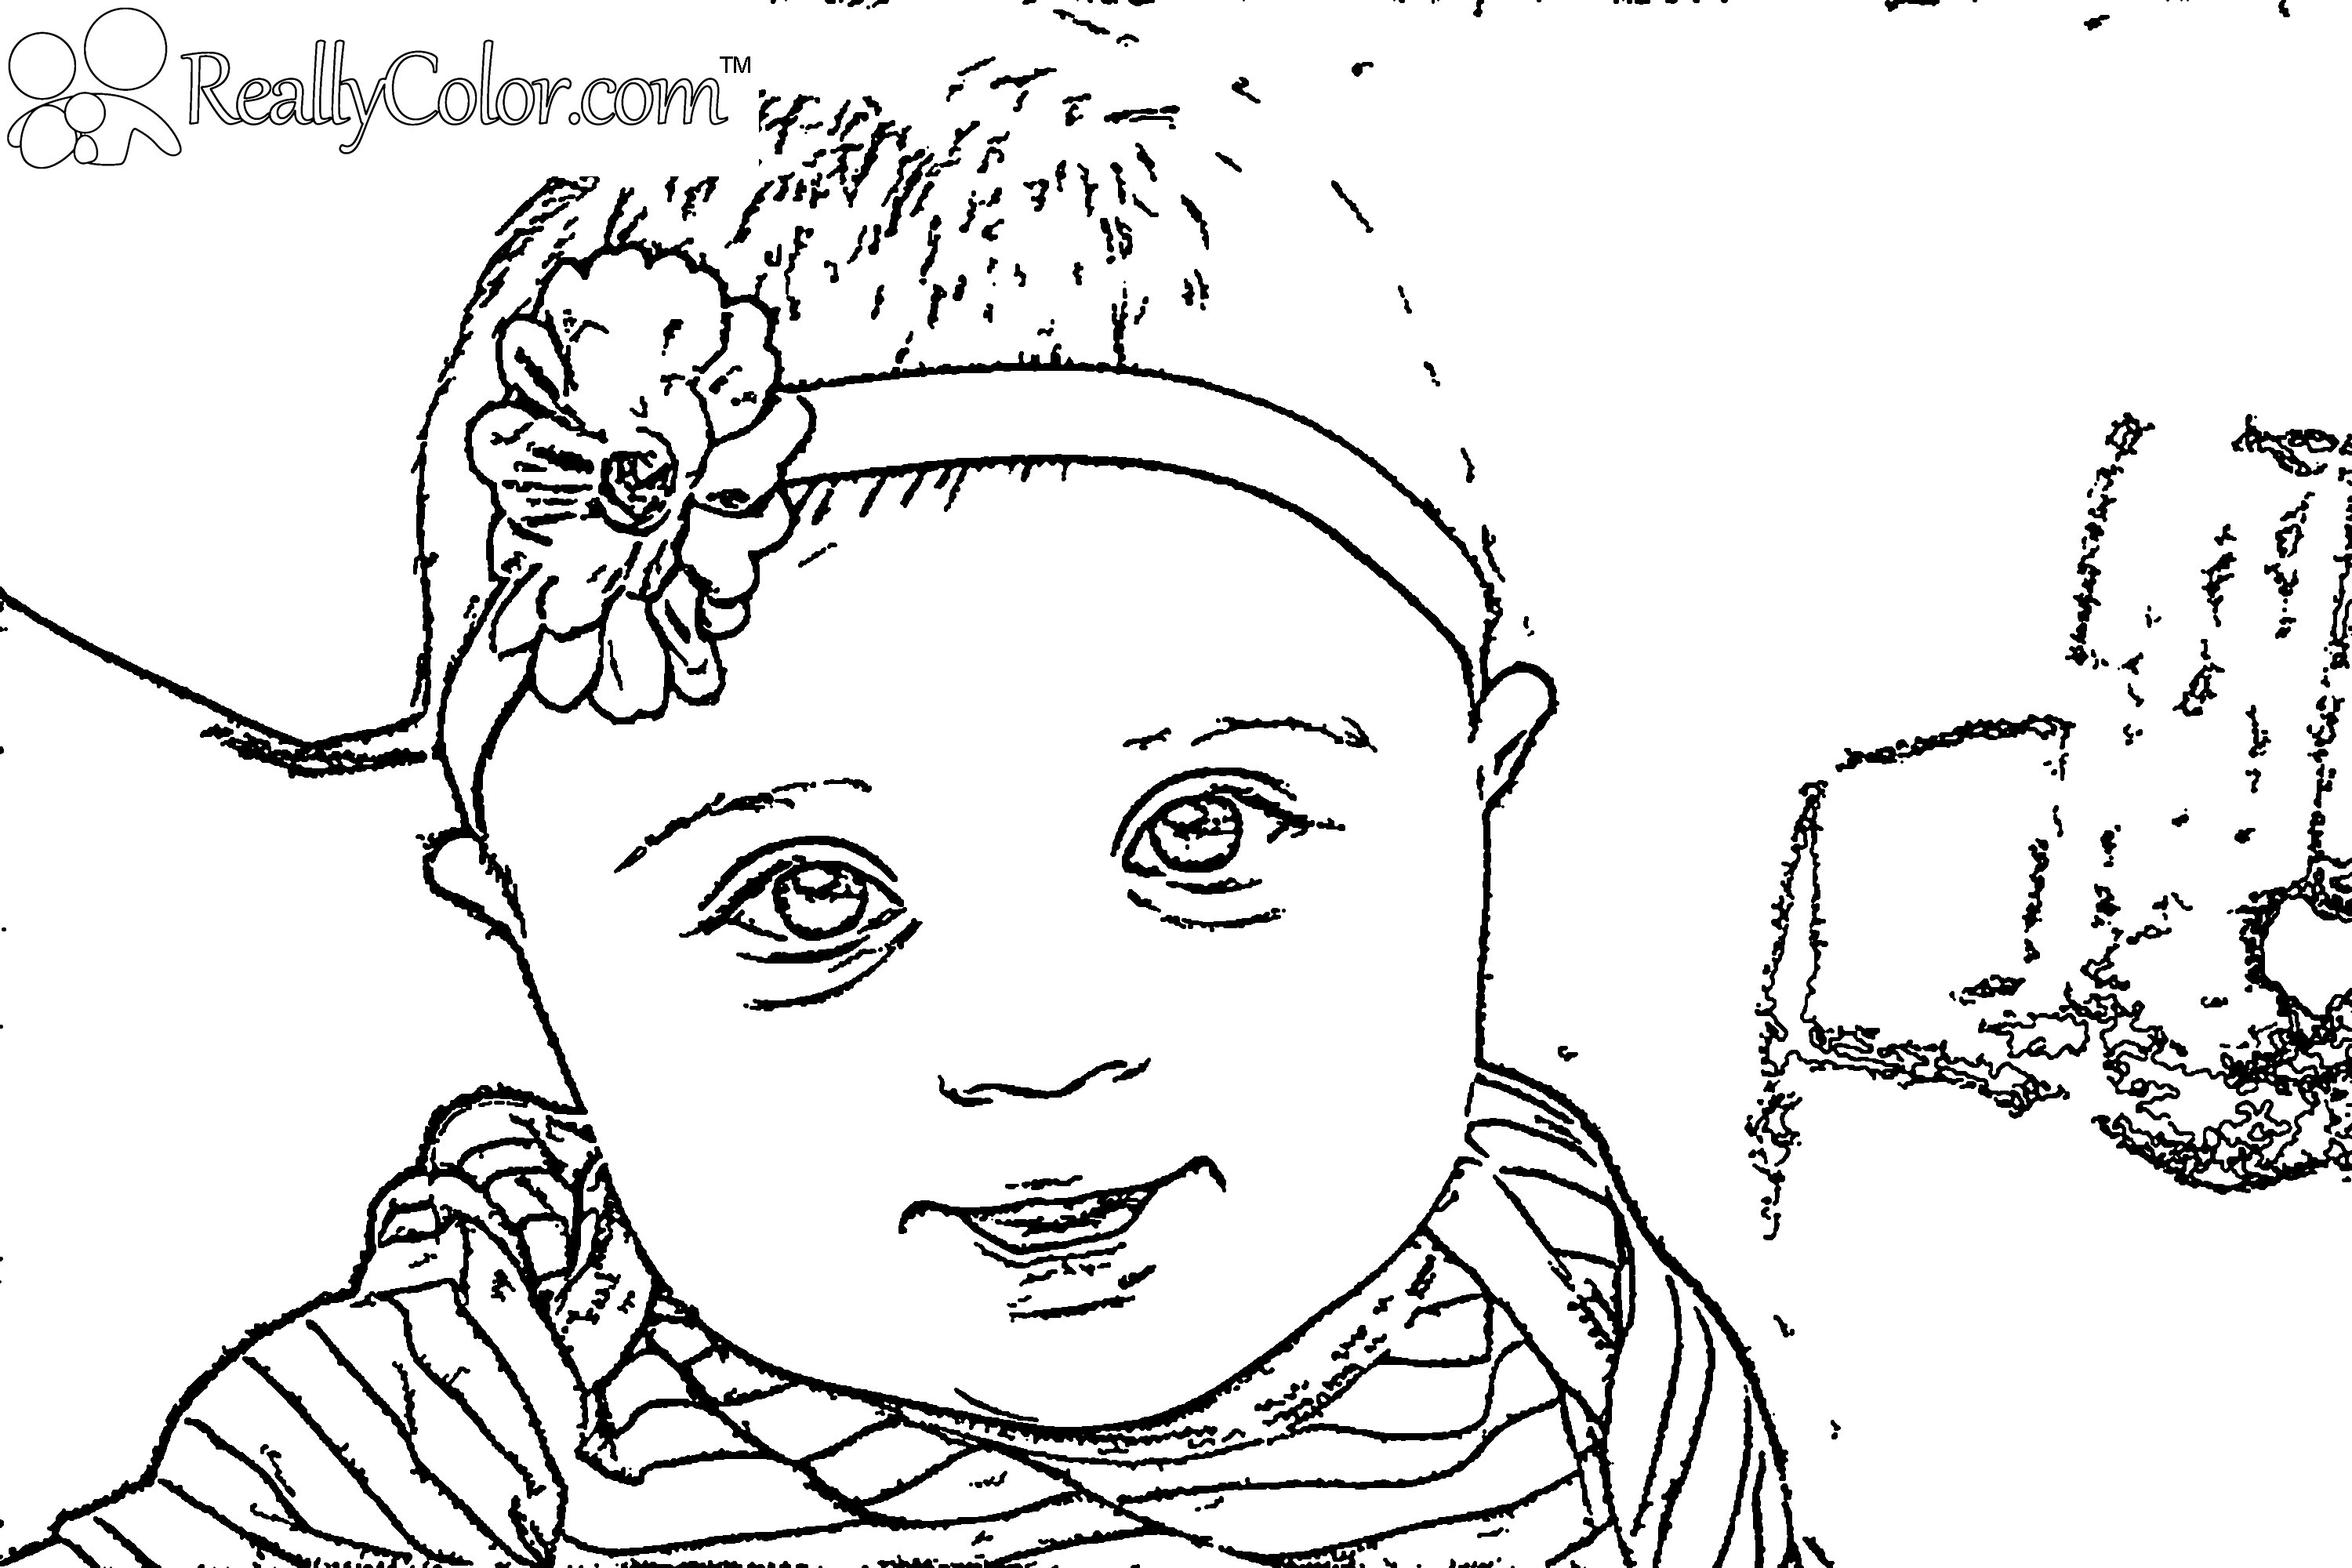 Newborn Baby Drawing At Free For Personal Use Eyebrow New 3000x2000 The Boss Coloring Page Printable Pages